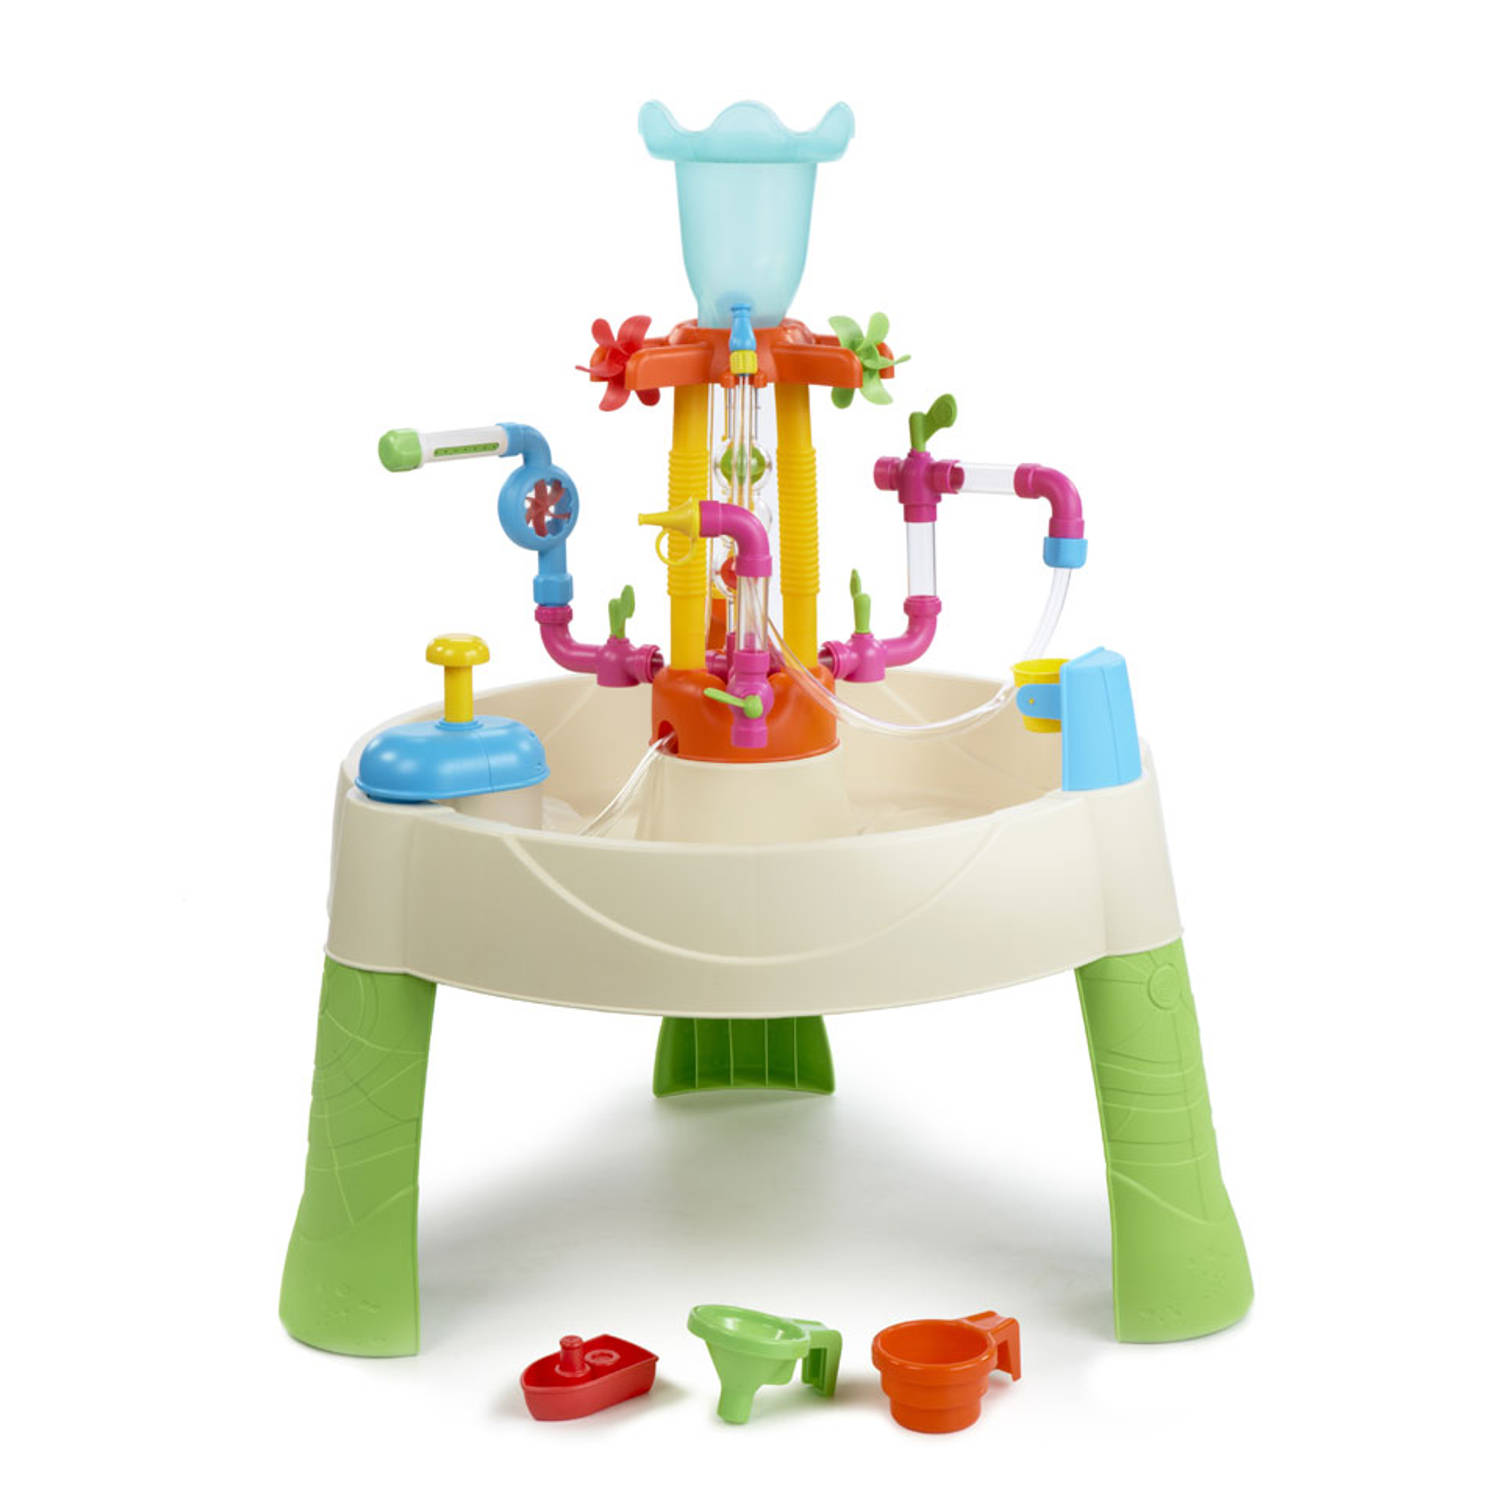 Korting Little Tikes watertafel fontein